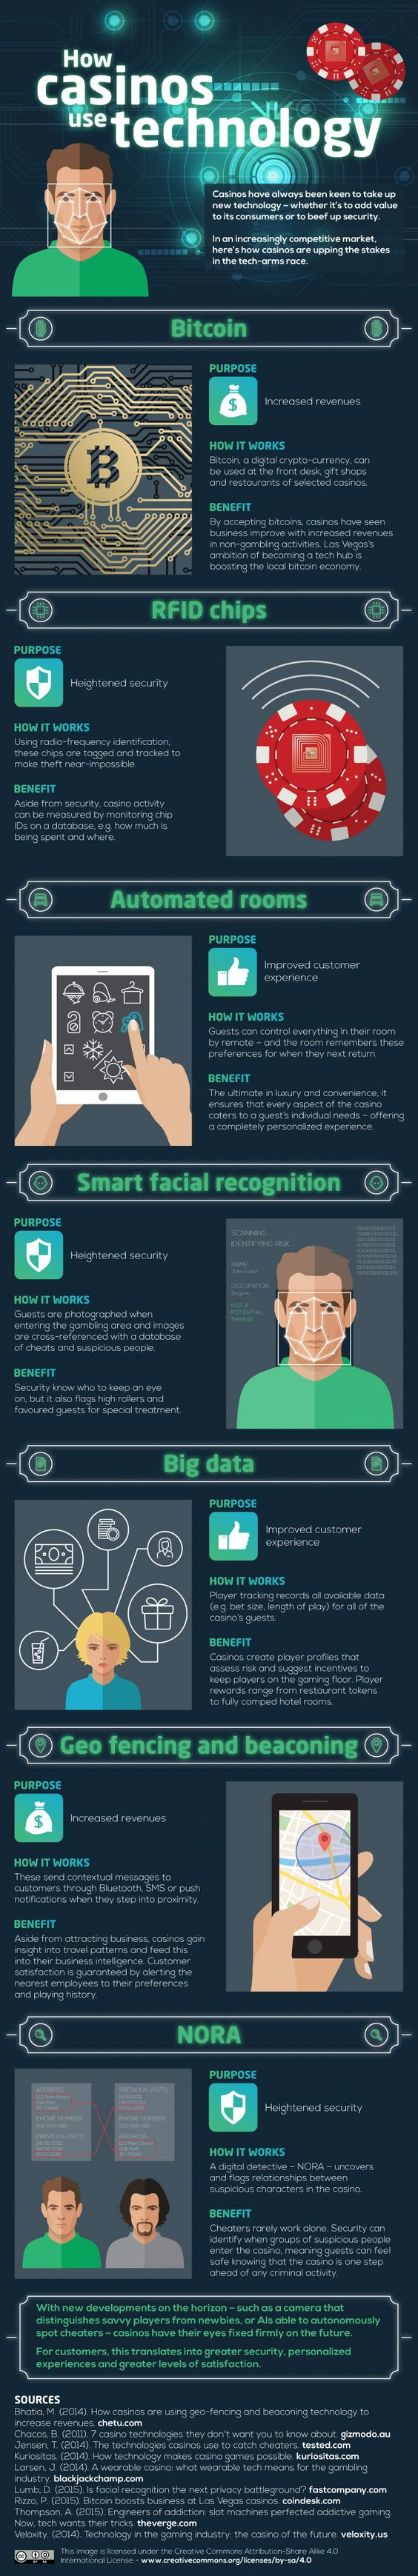 How Casinos Use Technology Infographic